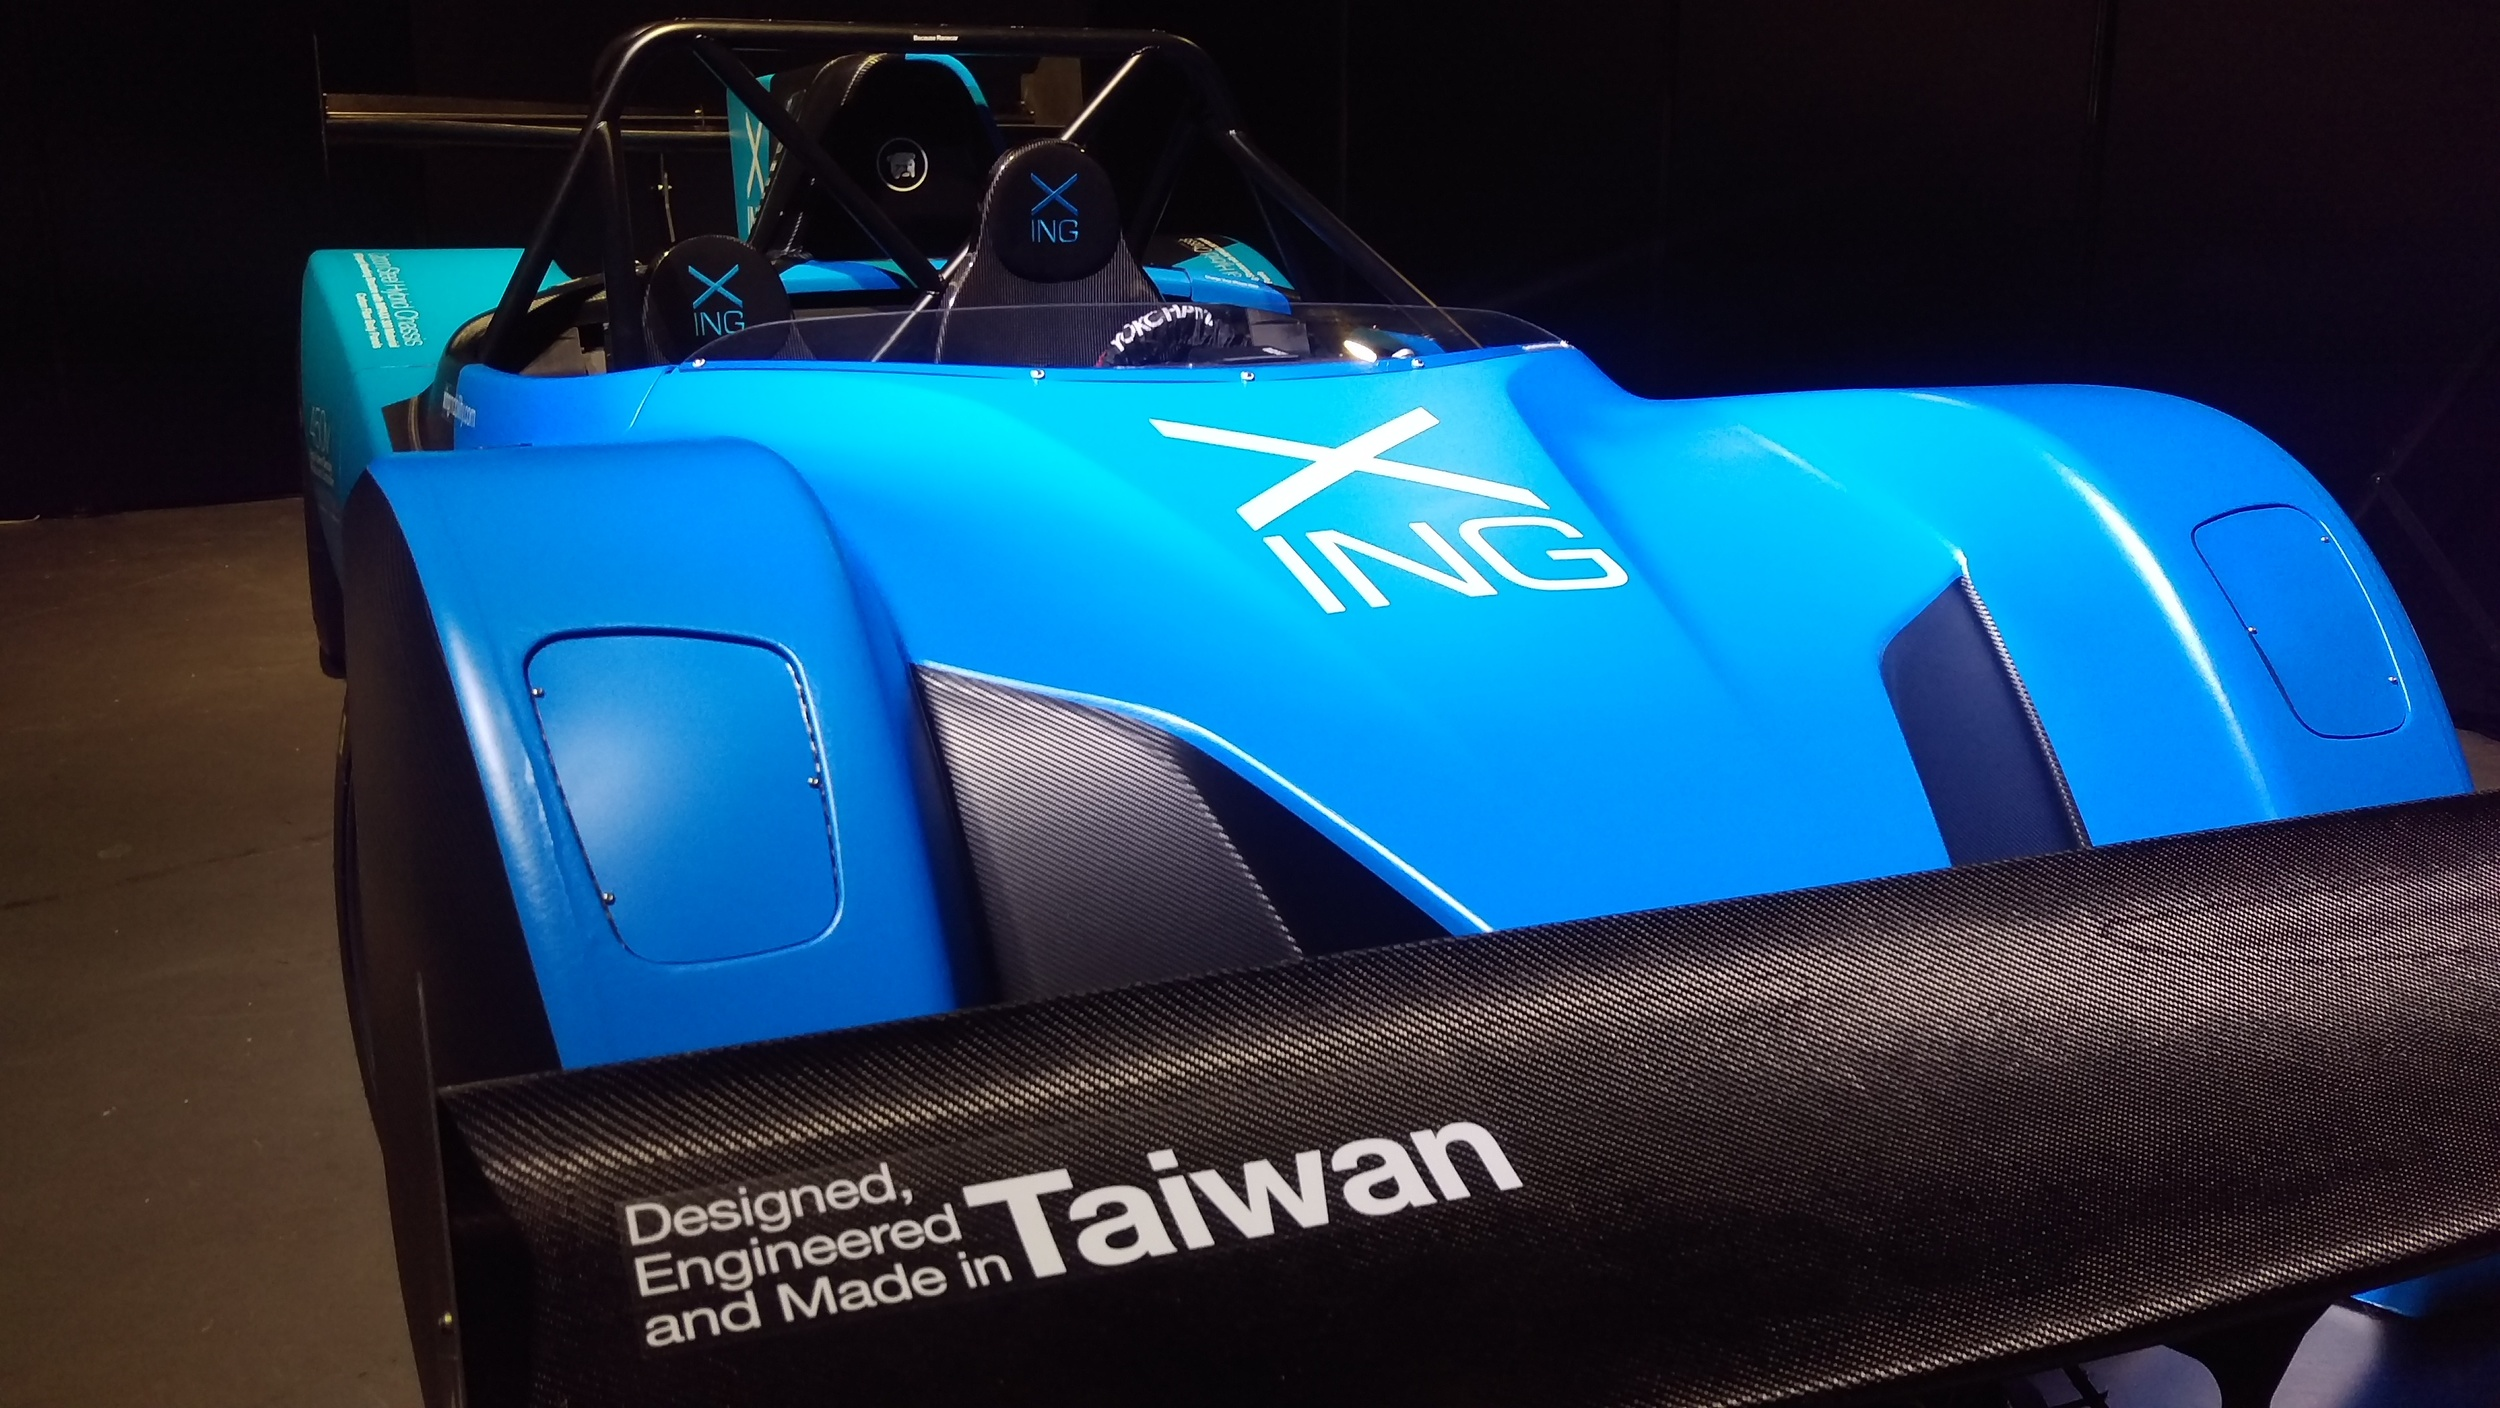 XING Mobility's electric race car prototype was unveiled at TEDxTaipei in October.